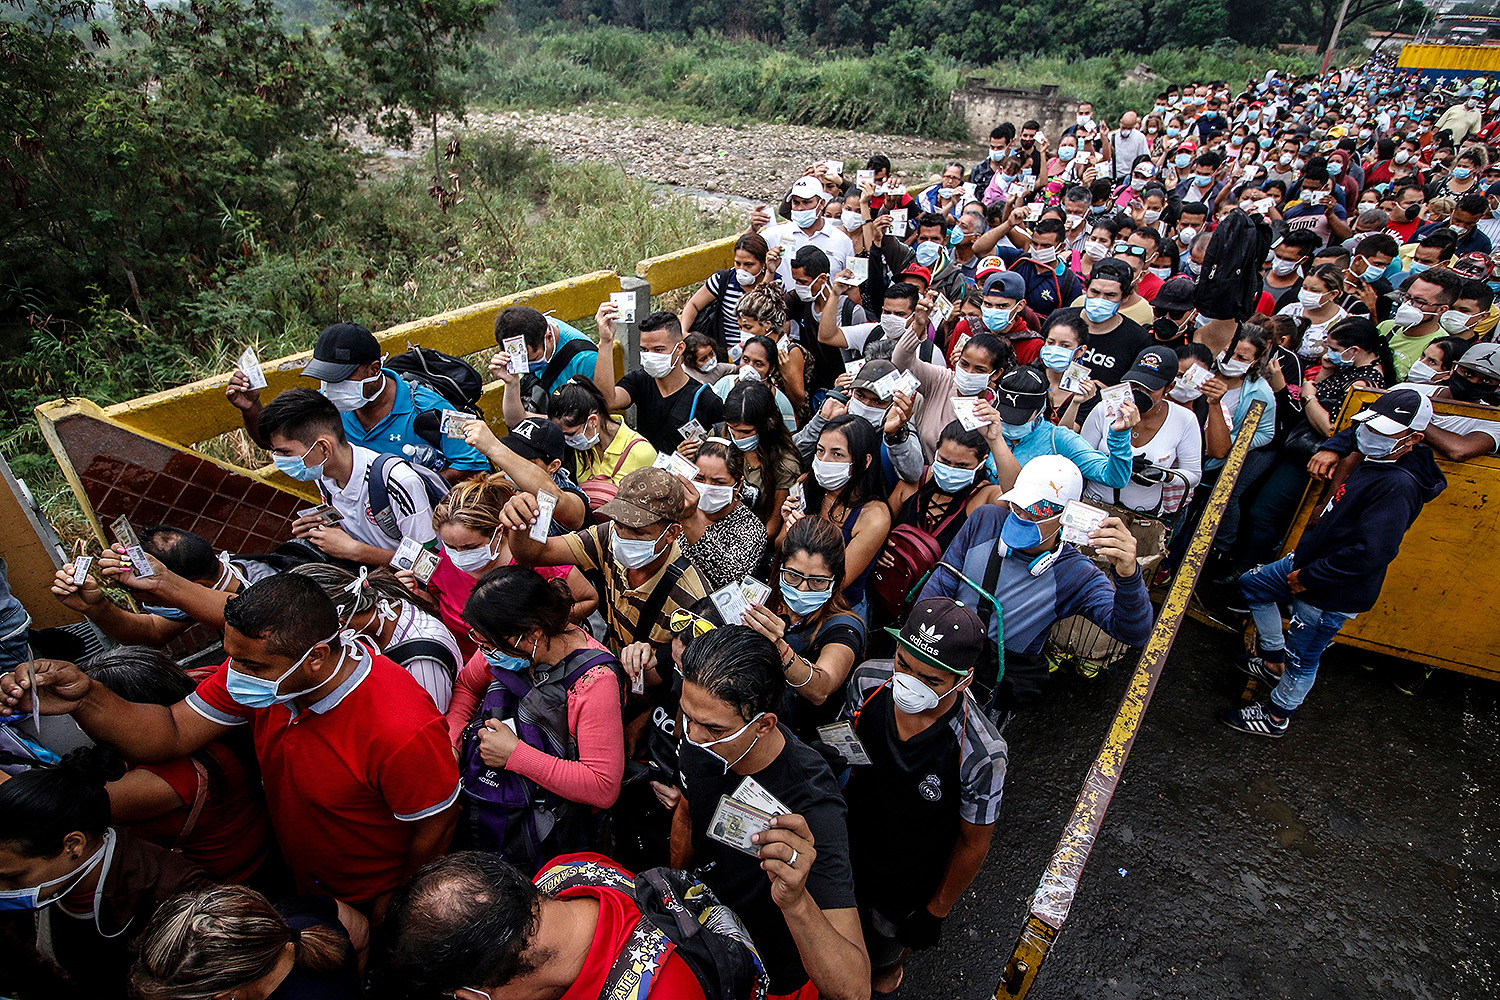 Refugees coming from Venezuela hold up their documents at the border on Simón Bolívar International Bridge in Cúcuta, Colombia, on March 12. SCHNEYDER MENDOZA/AFP via Getty Images